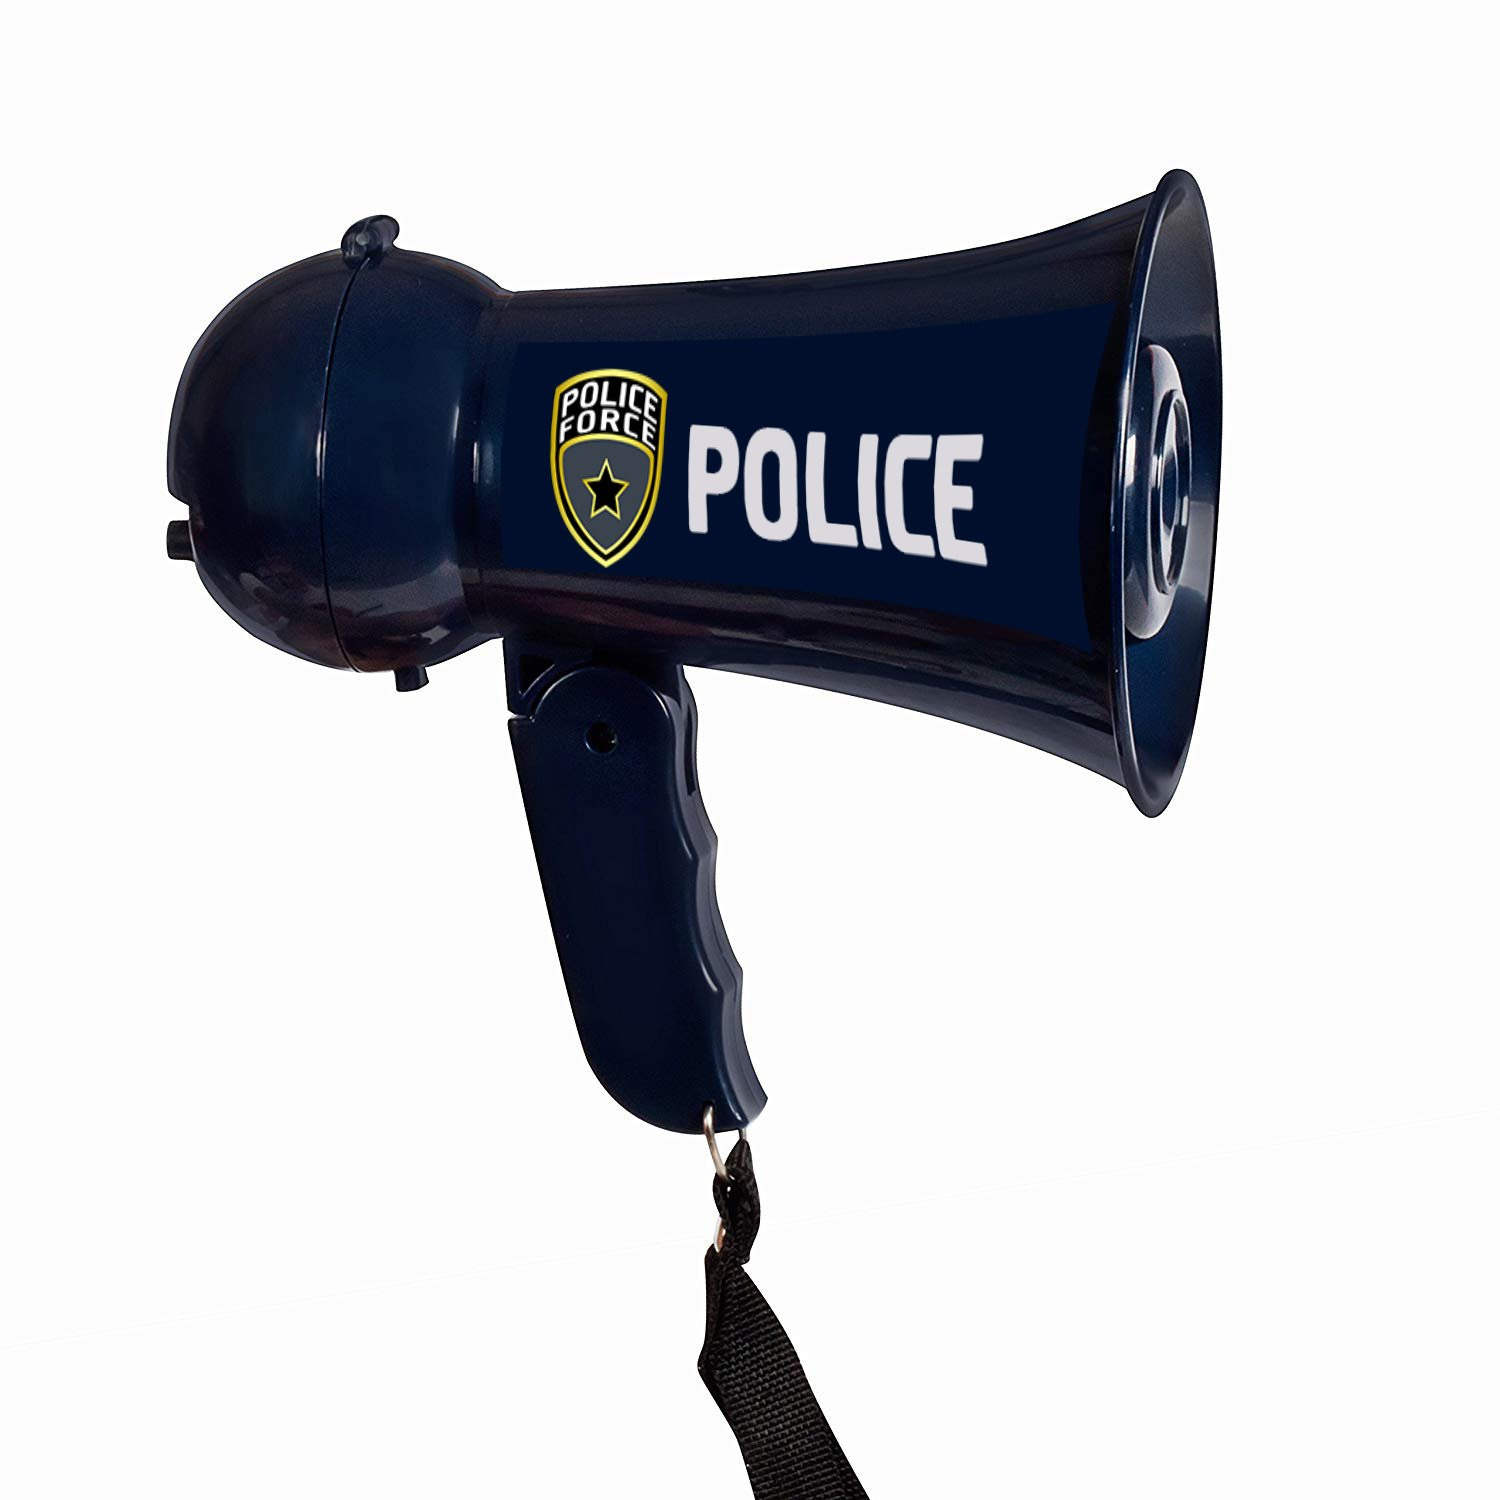 Pretend Police Officer Toy Megaphone with Siren Sounds for Kids - Loud, Clear, Folding Handle, Strap, Volume Control